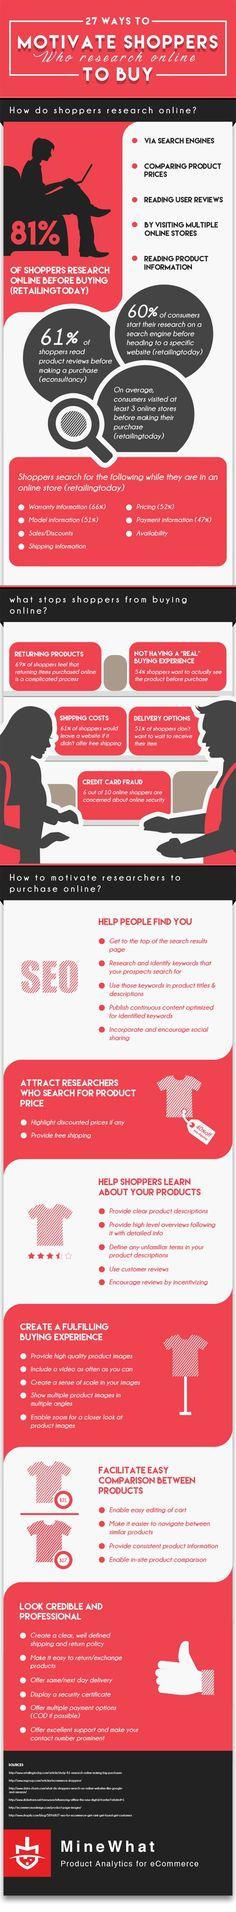 How do shoppers research online?